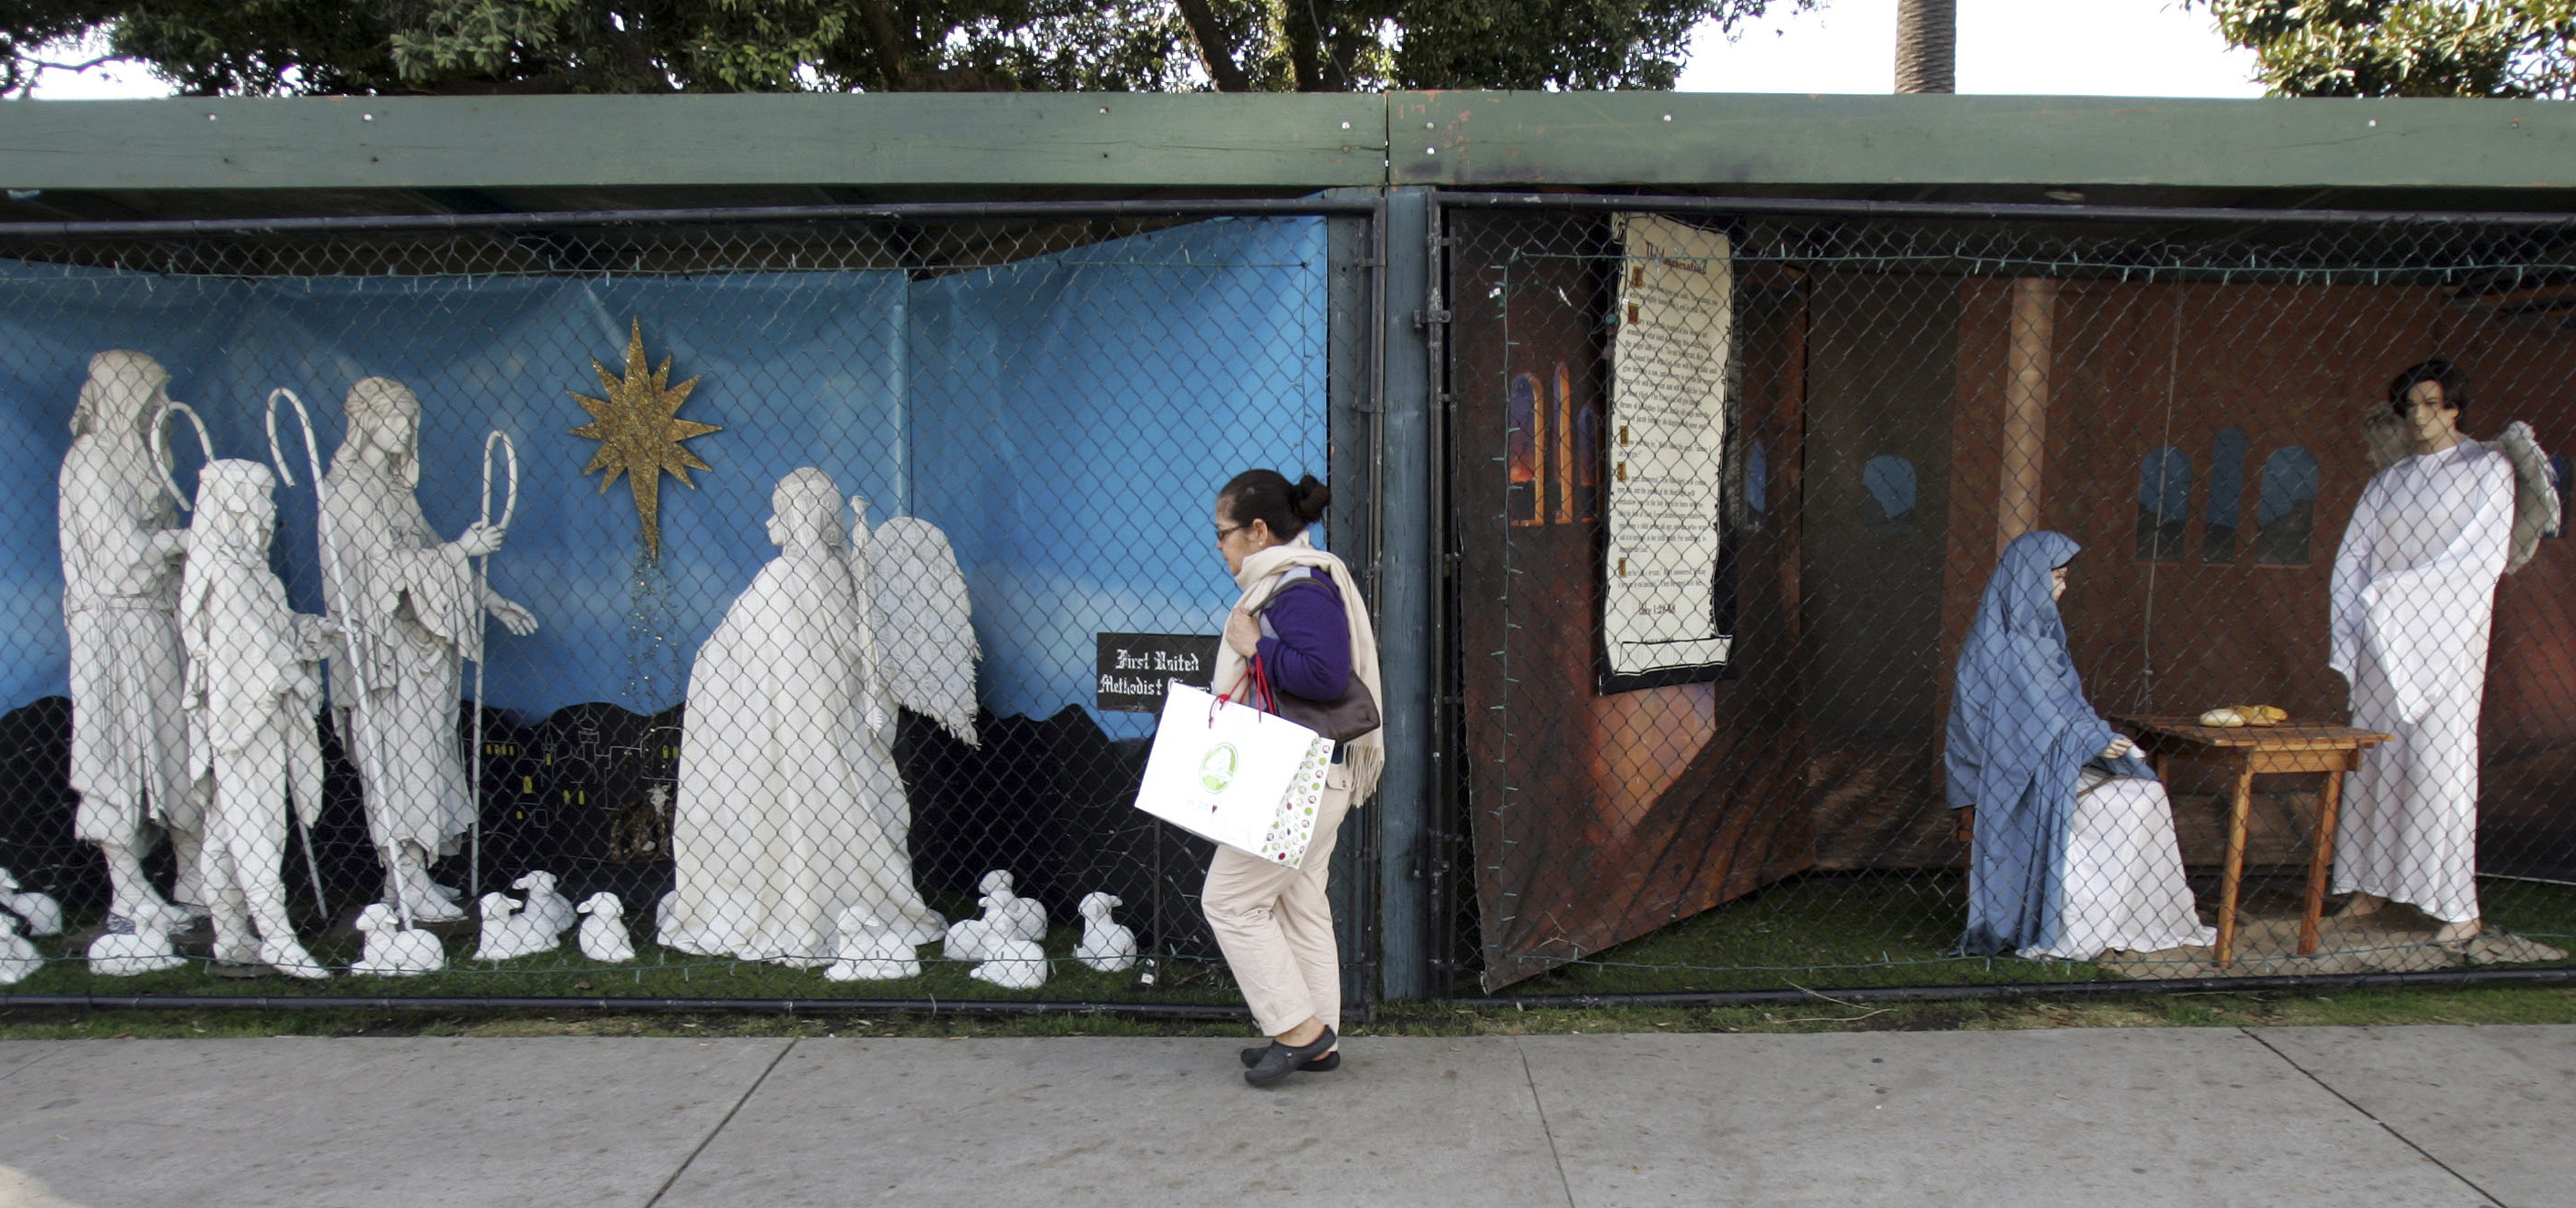 In this Dec. 13, 2011 file photo, a woman walks past a two of the traditional displays showing the Nativity scene along Ocean Avenue at Palisades Park in Santa Monica, Calif.